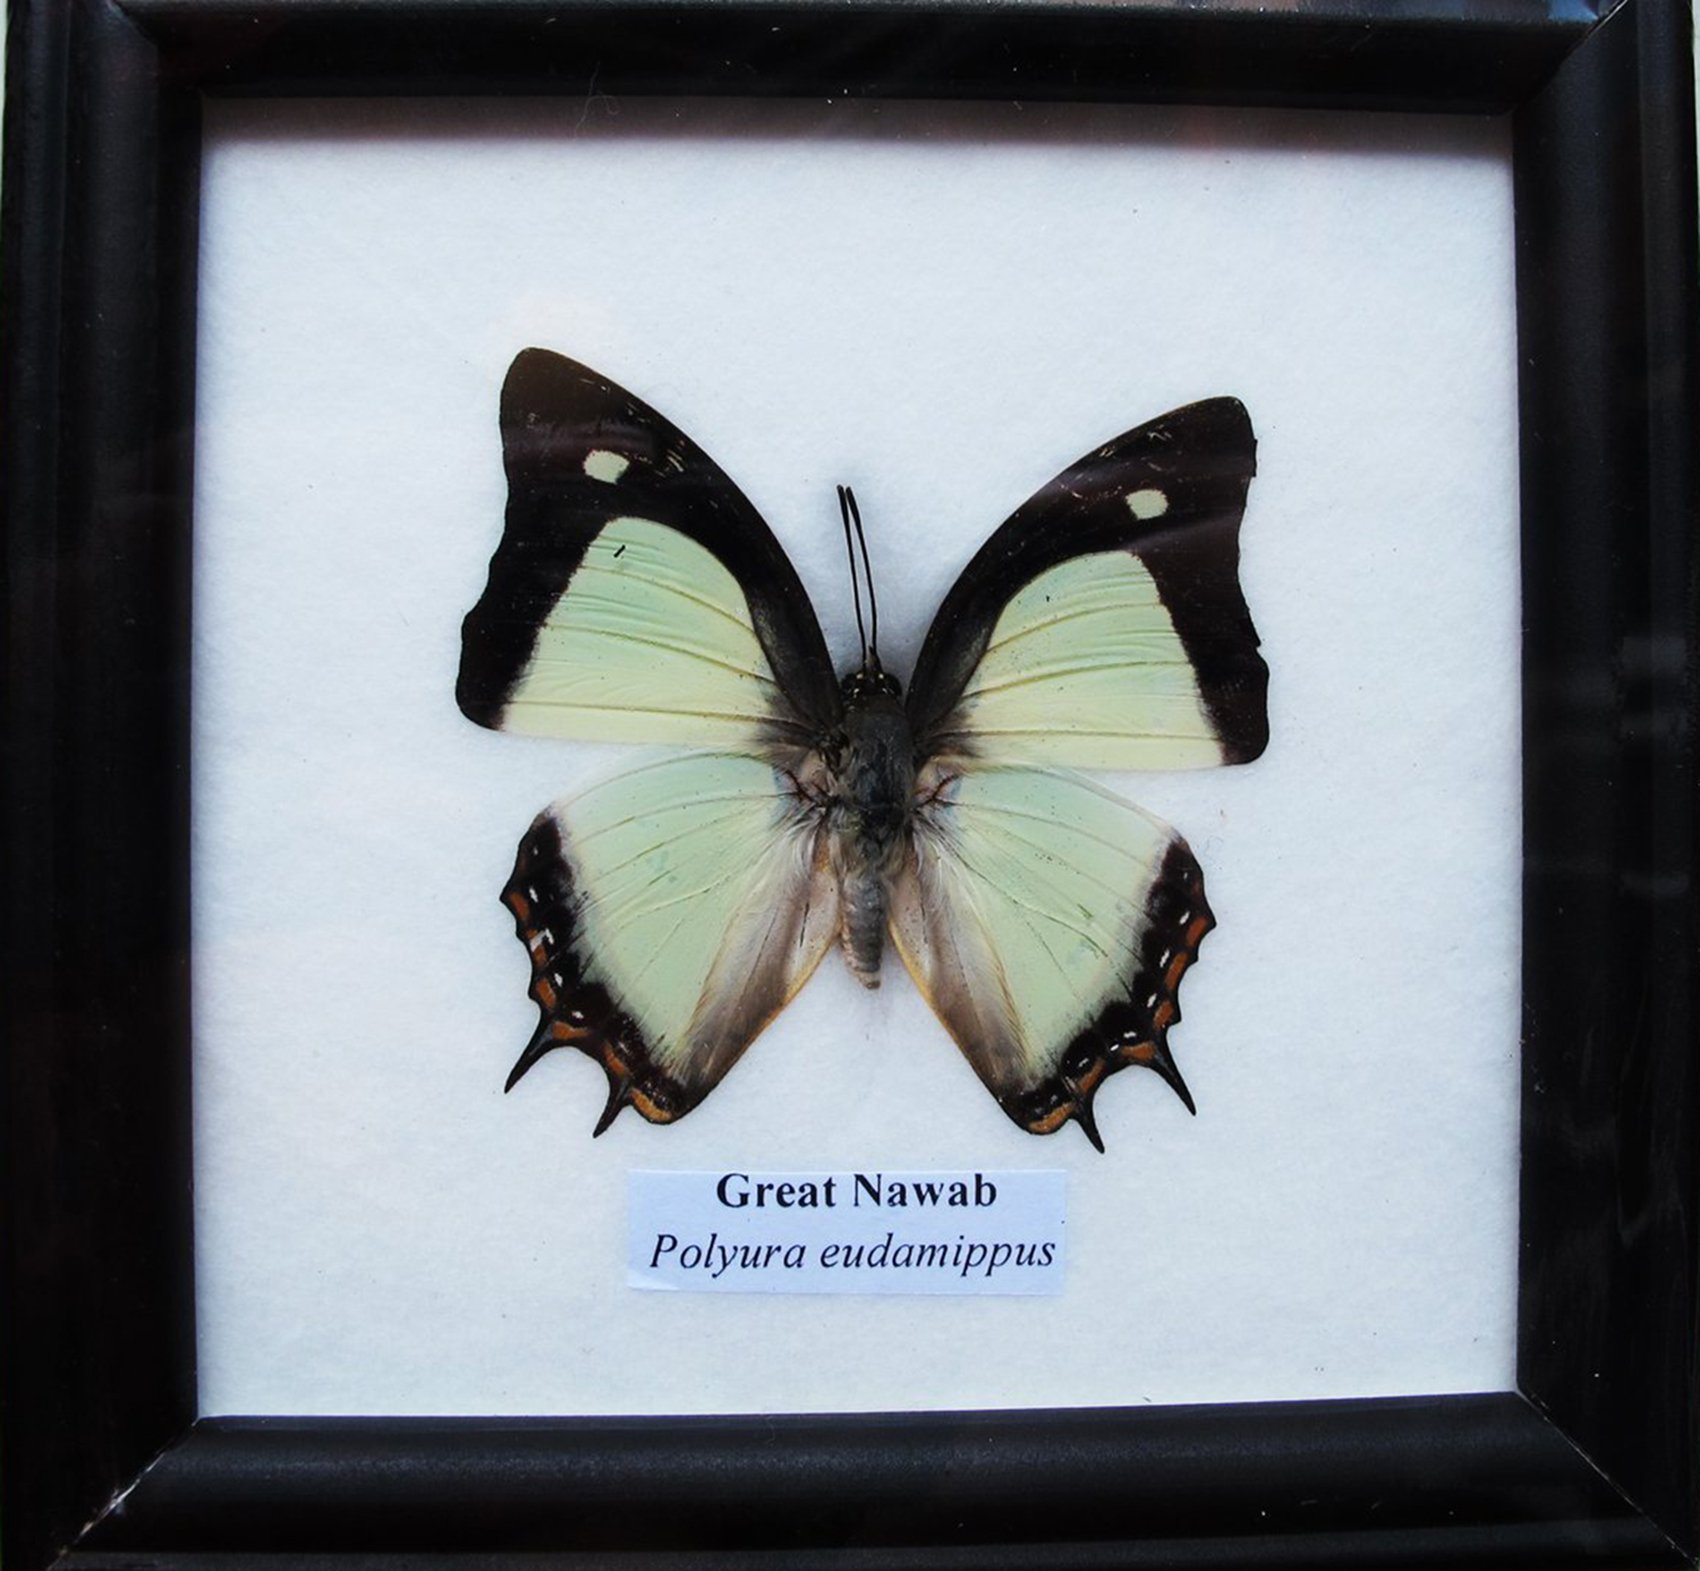 Insectfarm Framed Real Beautiful Great Nawab Butterfly Specimen Collection Display Insect Taxidermy (BTF01V) by Insectfarm